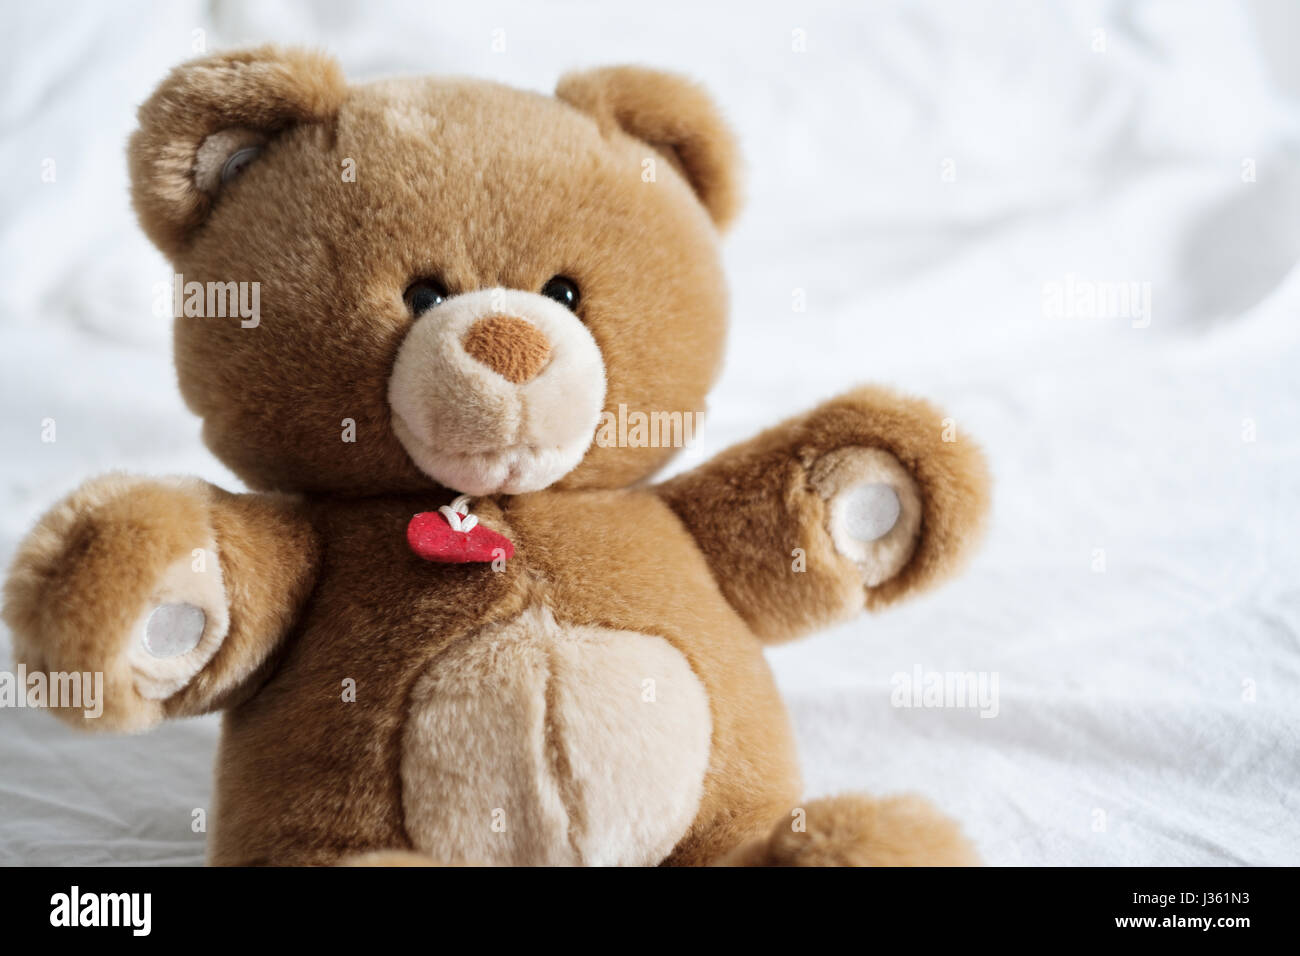 Cozy and soft teddy bear lying on the bed in the morning light - Stock Image